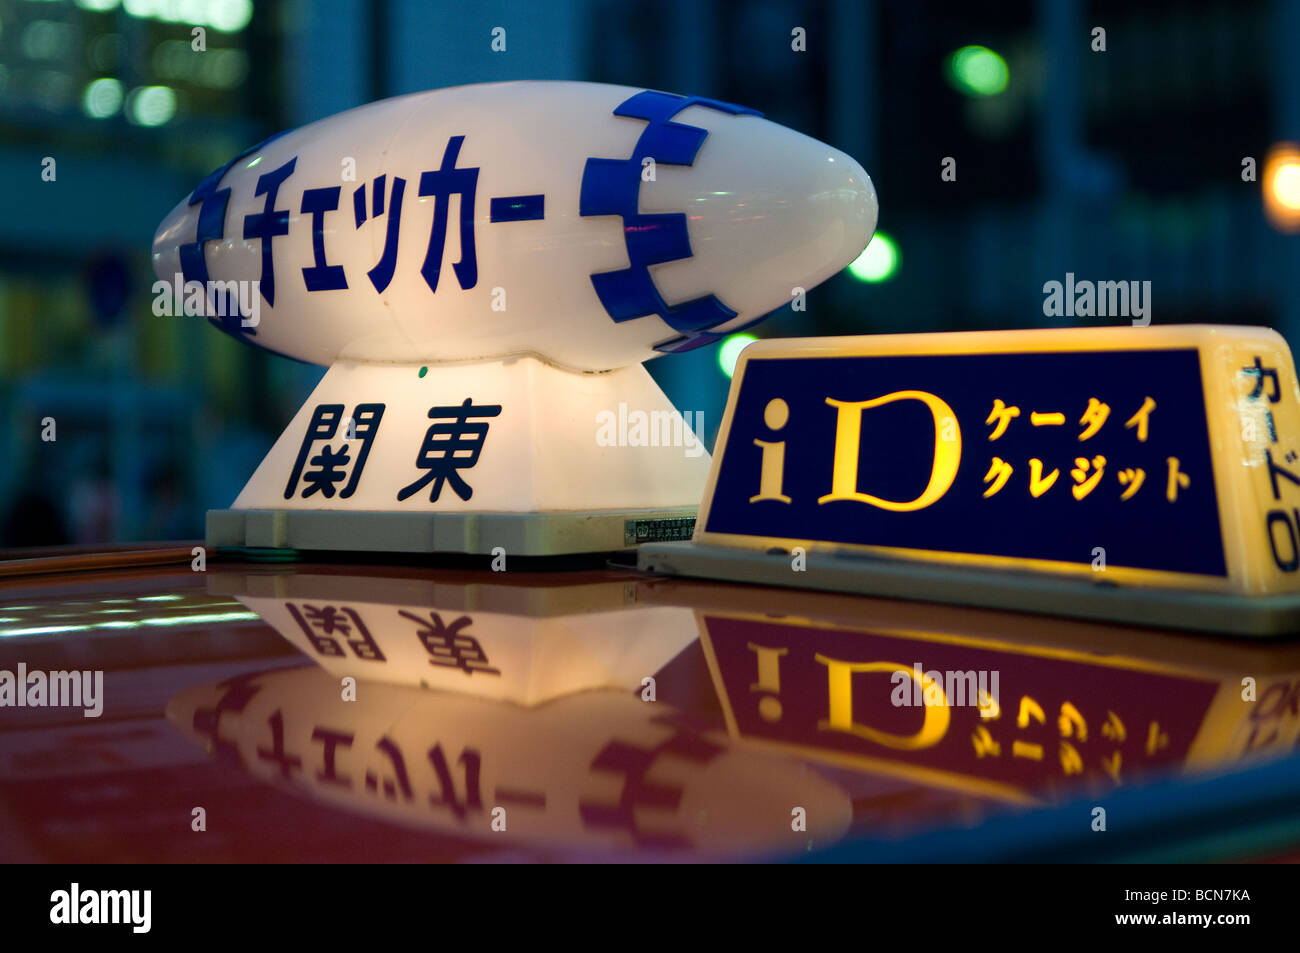 Illuminated taxicab toplight sign in Tokyo Japan - Stock Image